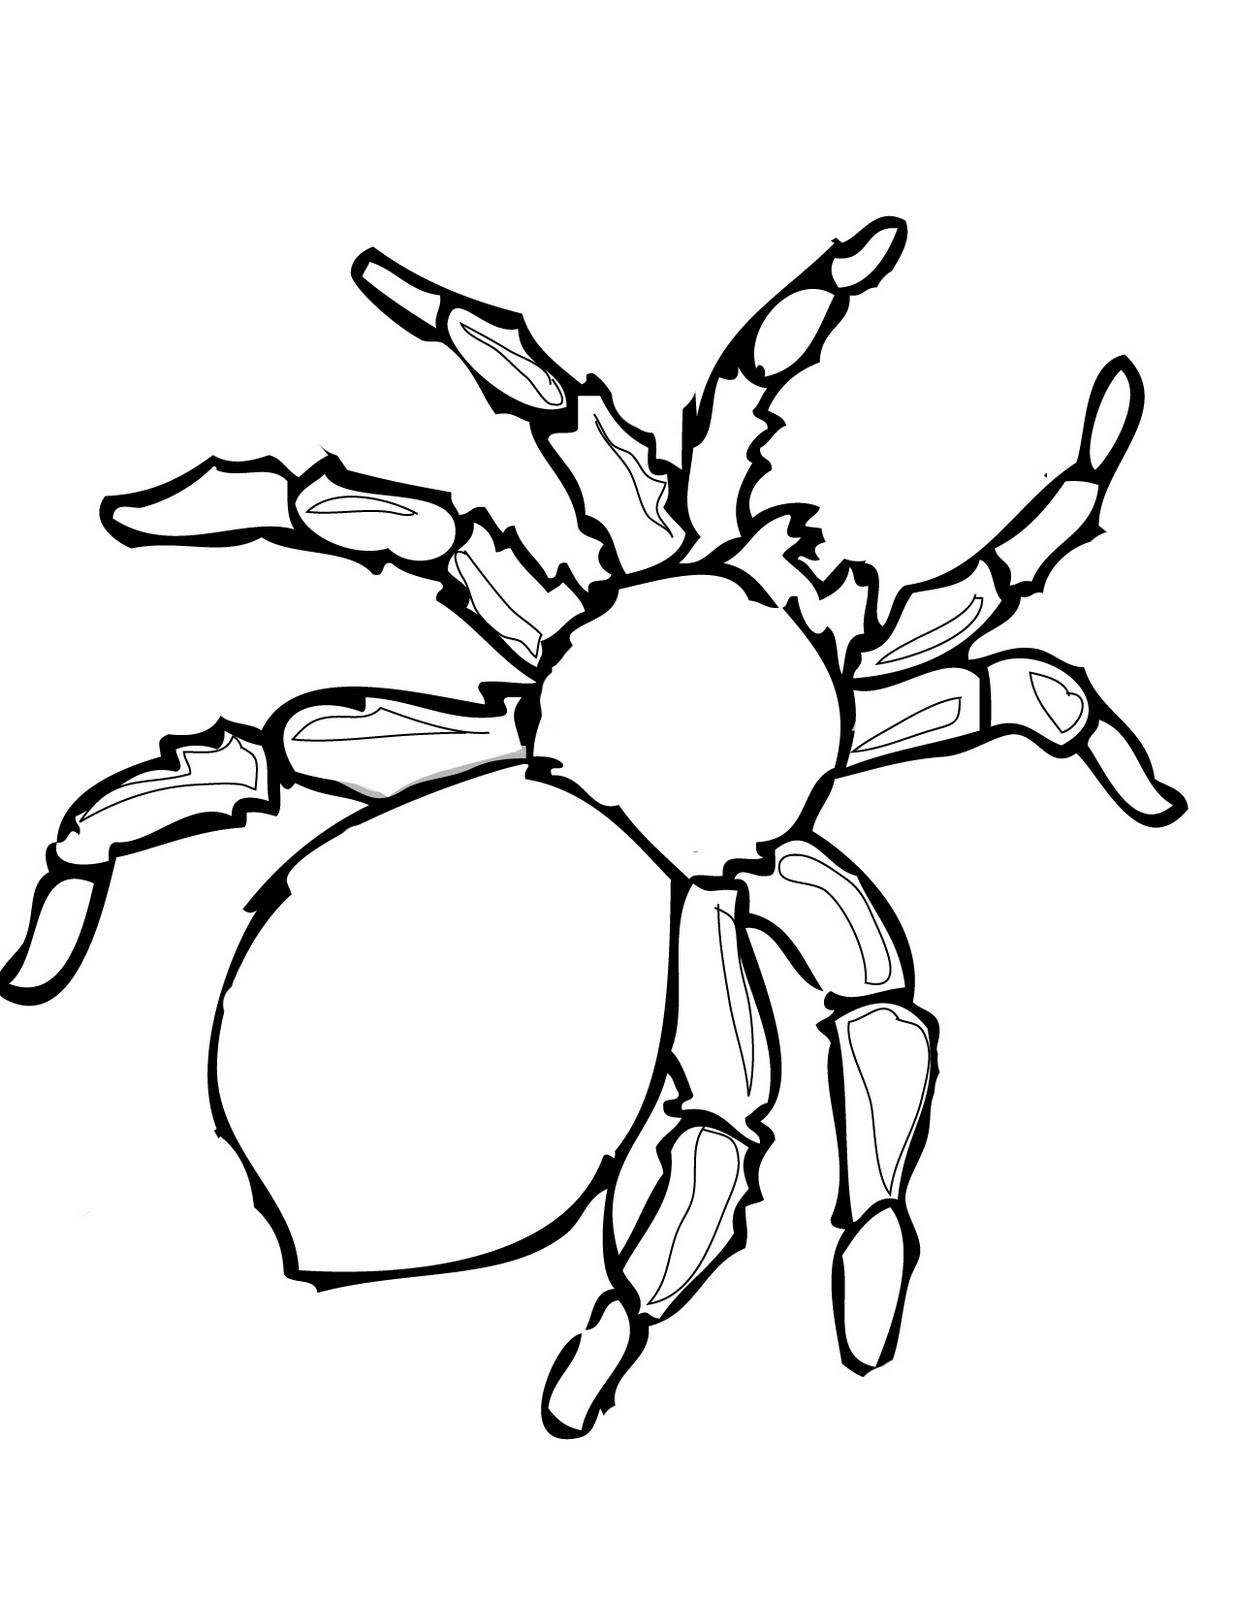 spider coloring page itsy bitsy spider coloring pages coloring page blog page coloring spider